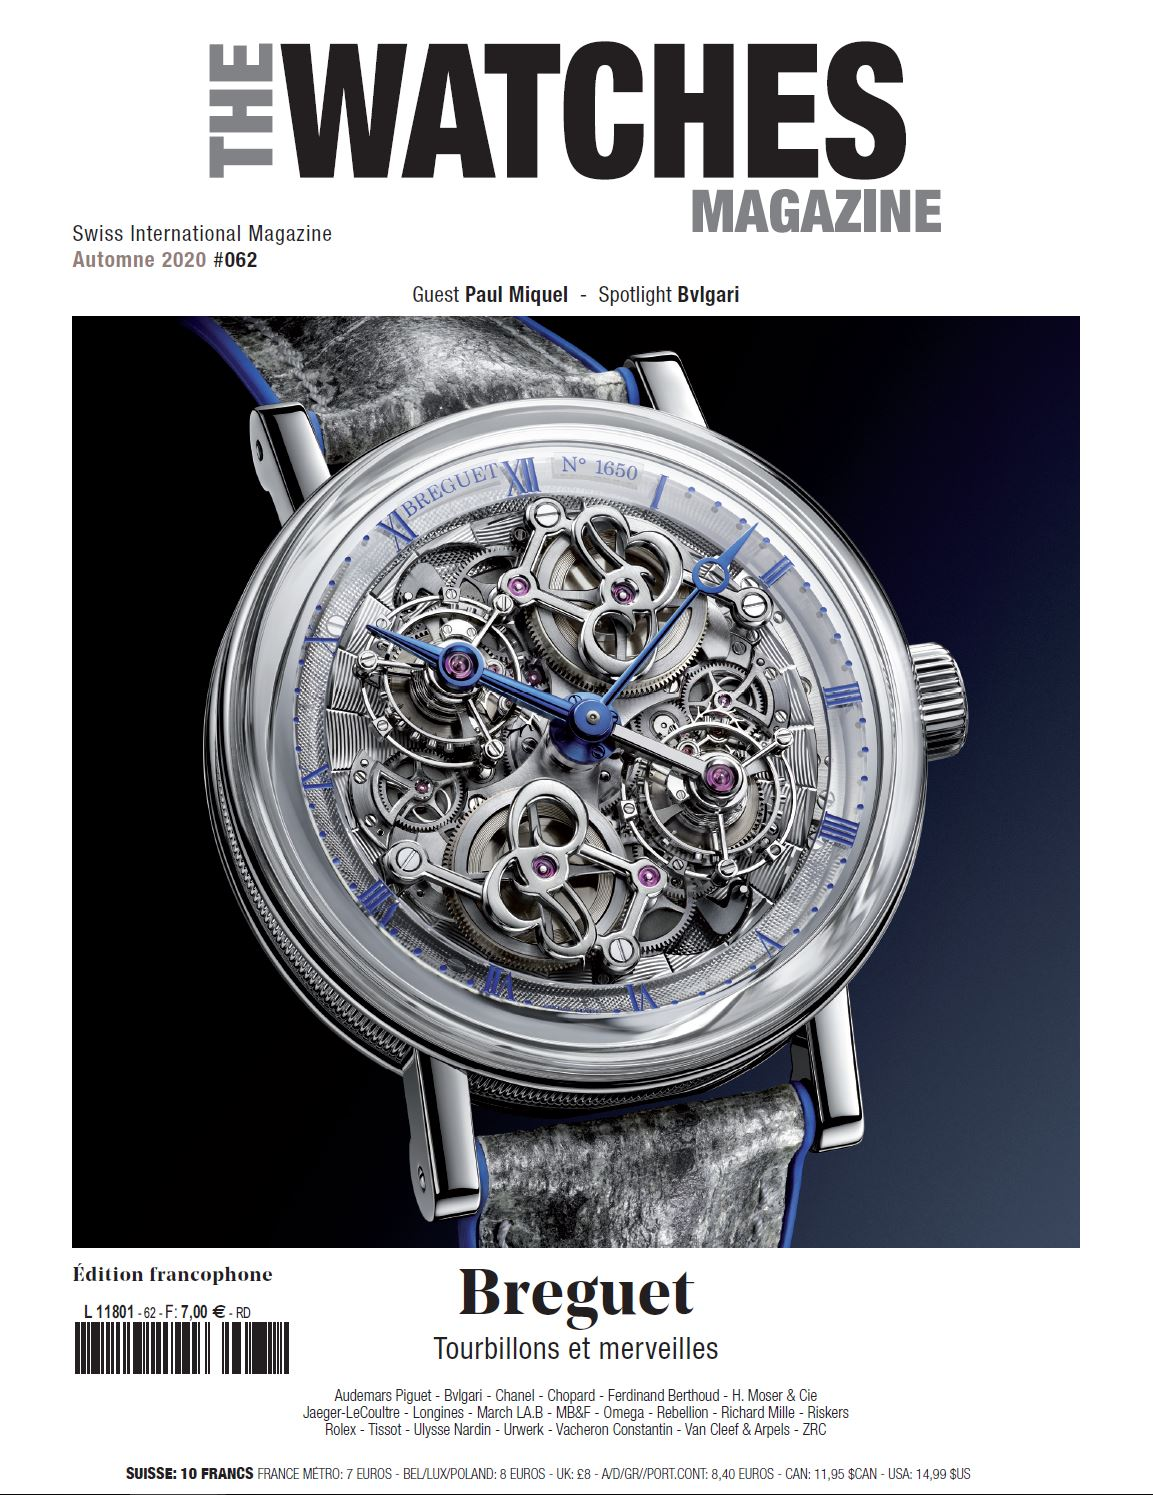 The_Watches_Magazine_Cover.JPG